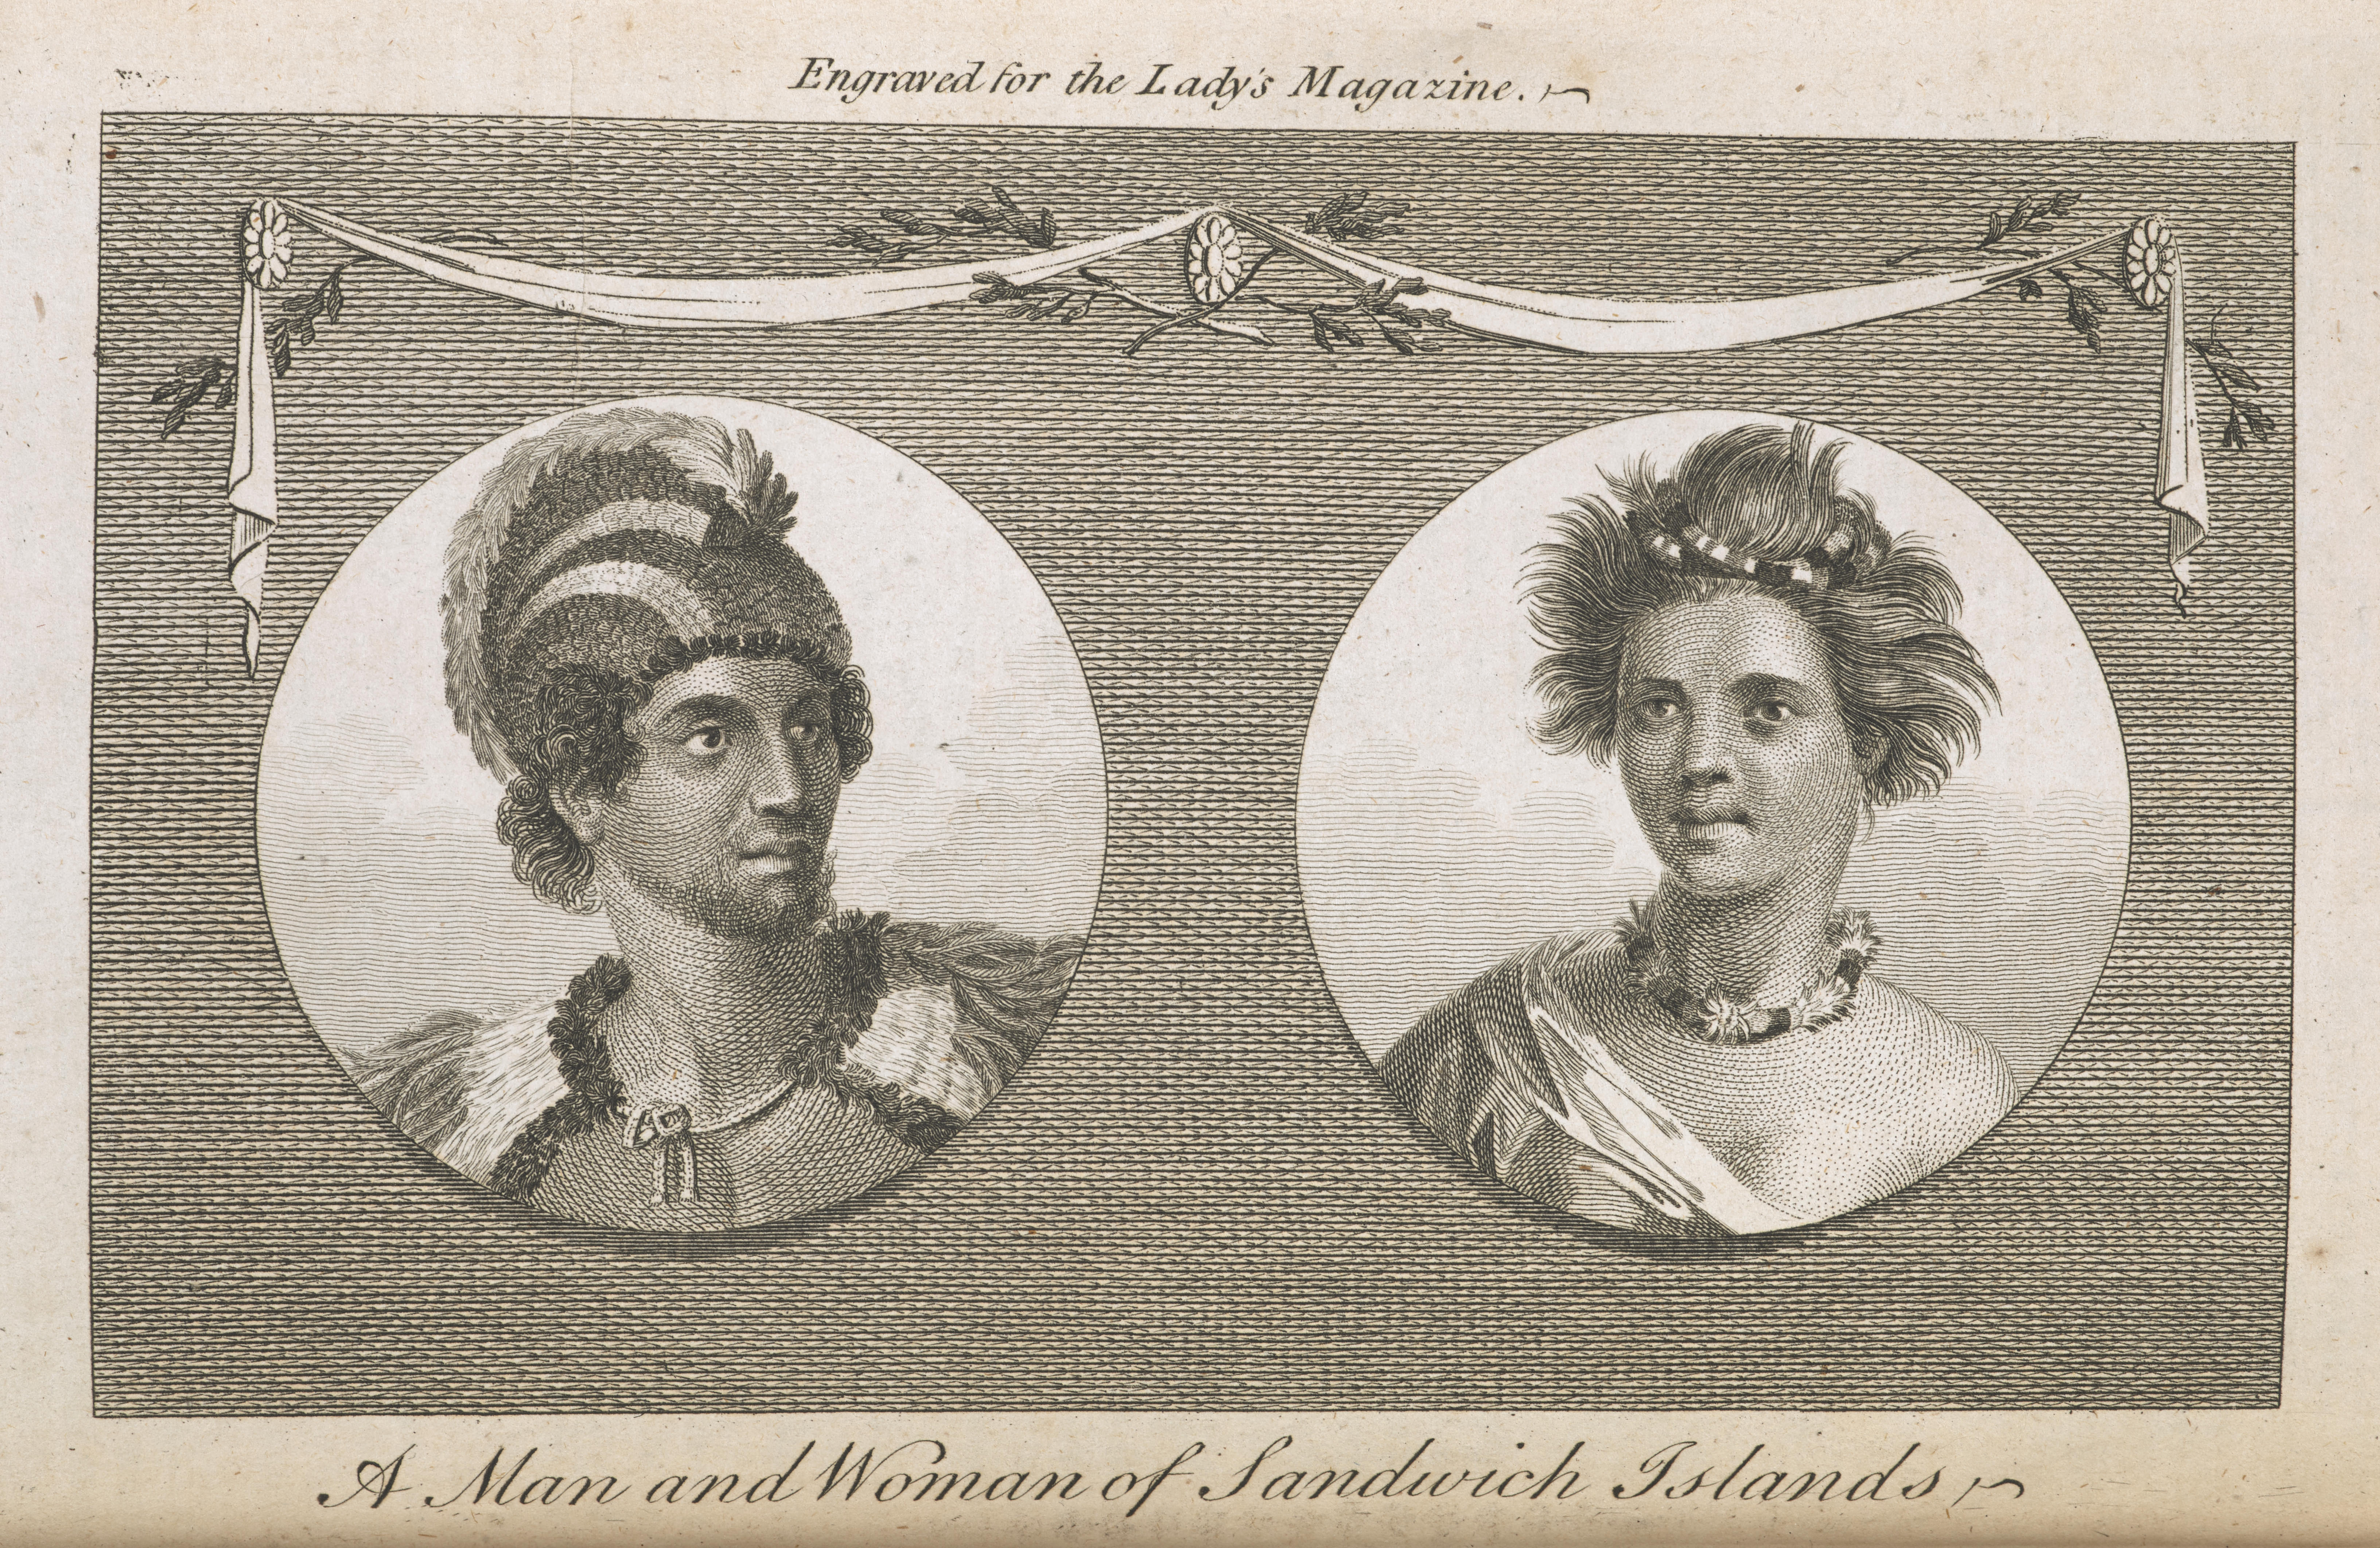 from <i>The Lady's Magazine</i>, 15, 1784, facing p. 285, engraving, 9.3 x 15.7 cm. Collection The British Library (P.P.5141).